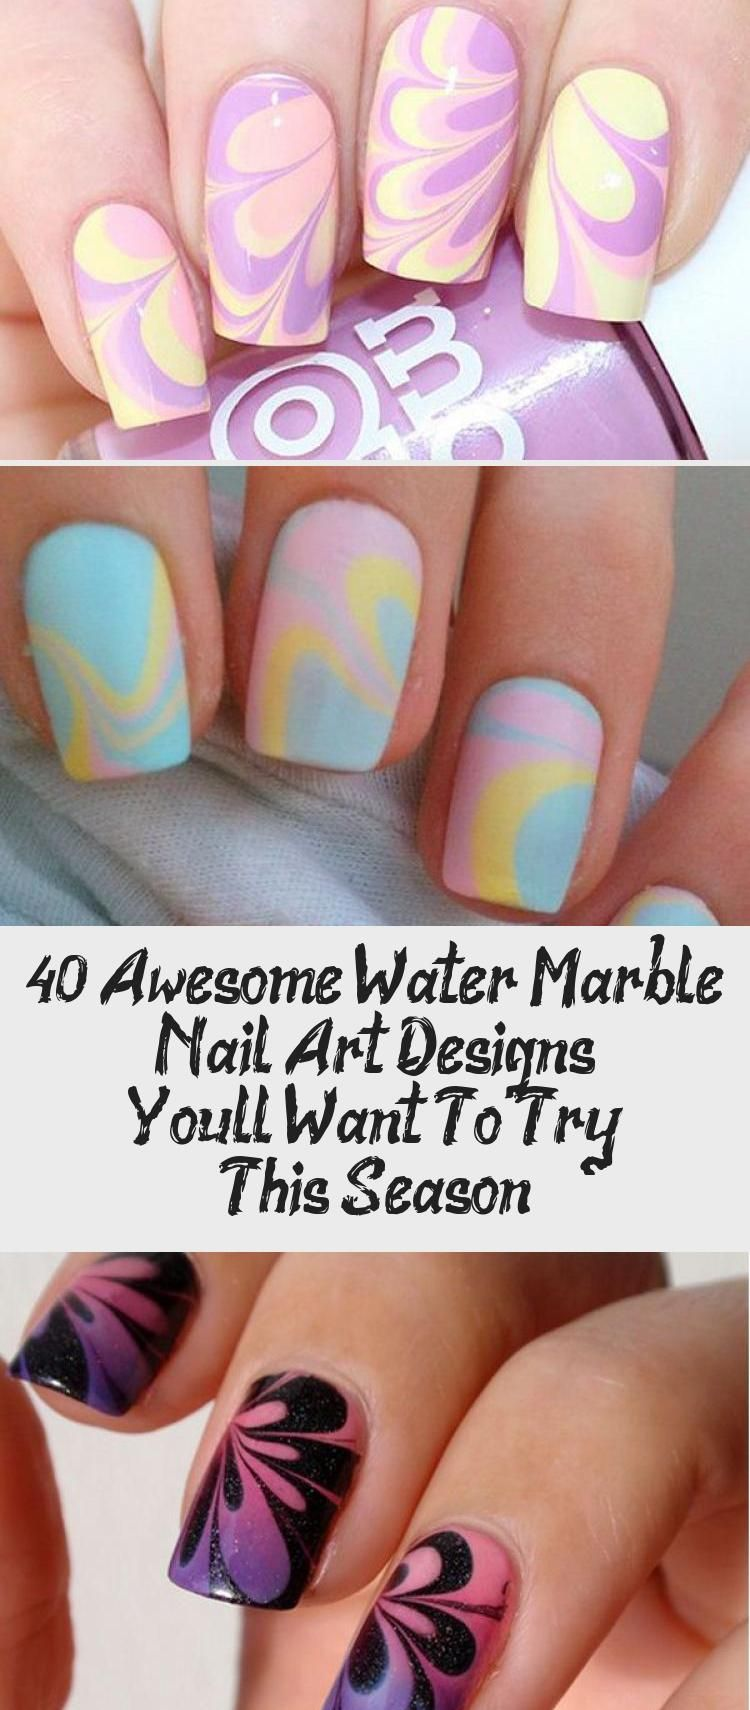 40 Awesome Water Marble Nail Art Designs You Ll Want To Try This Season Water Marble Nail Art Water Marble Nails Marble Nails